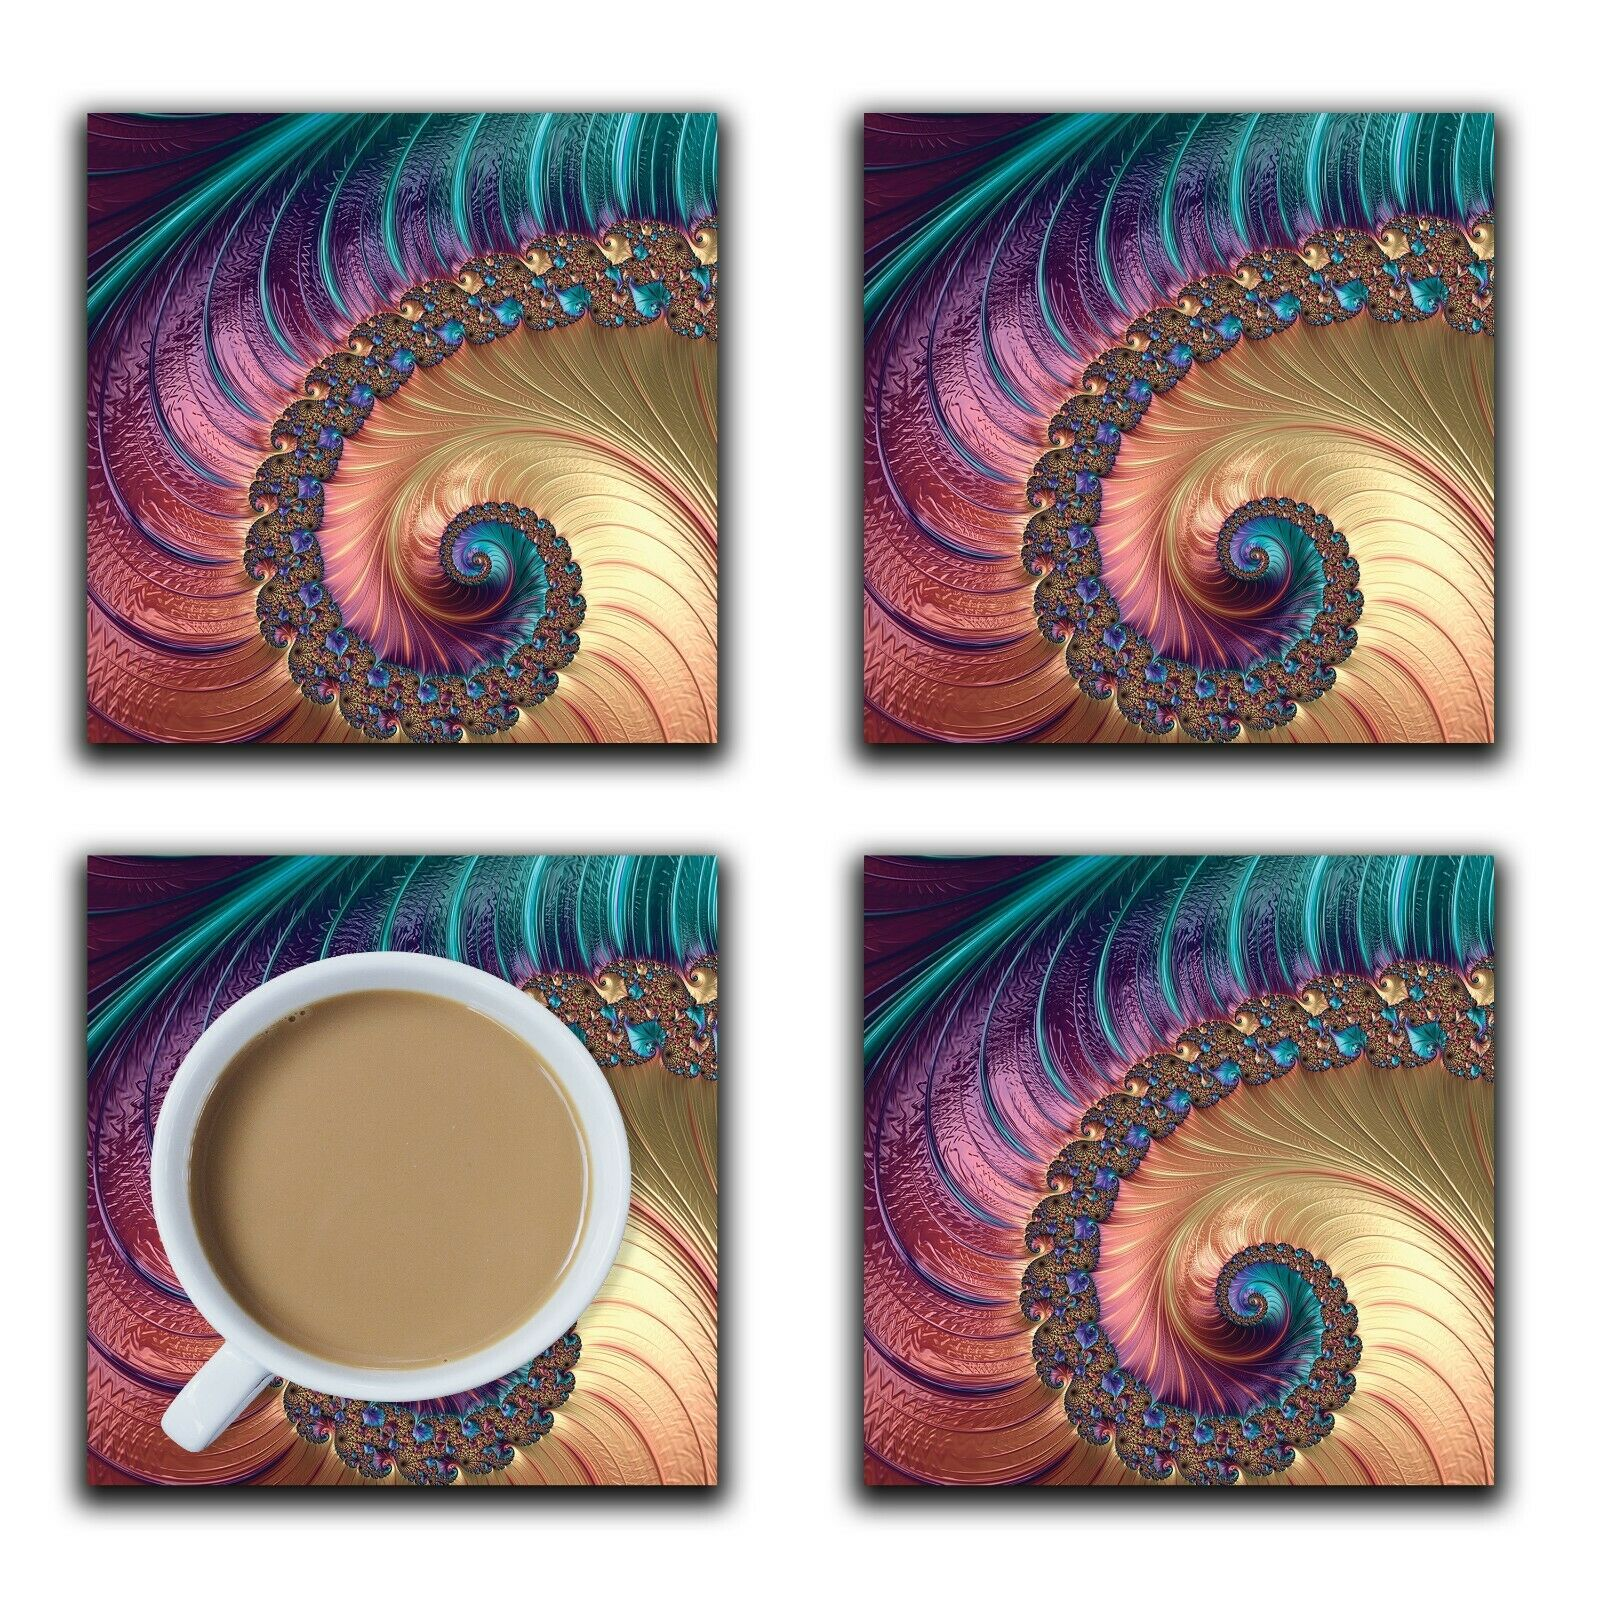 Embossi Printed Fractal Mandelbrot, wood or ceramic tile, set of 4